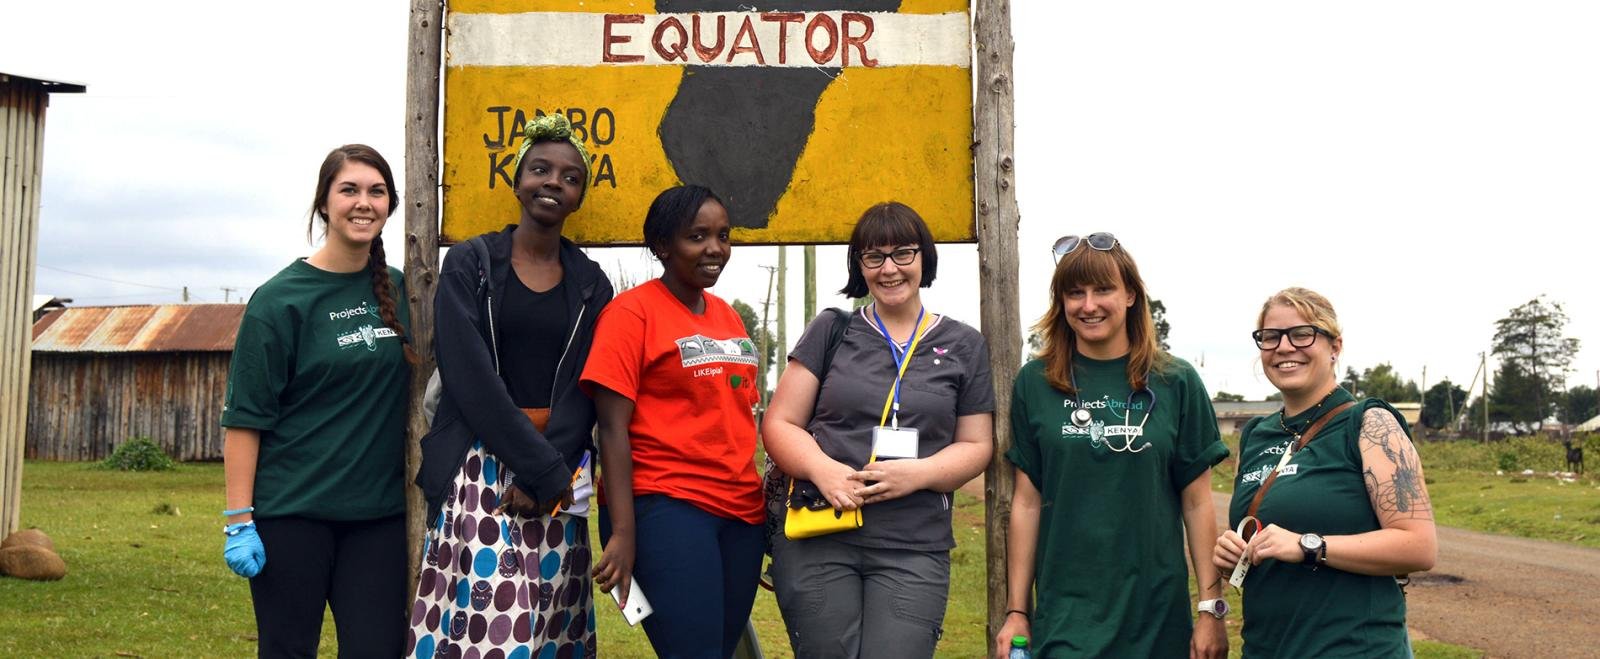 Projects Abroad Kenya staff members and Medicine and Healthcare volunteers from the United States, Ireland, Germany and Canada pose next to an 'Equator' sign in Nanyuki, Kenya